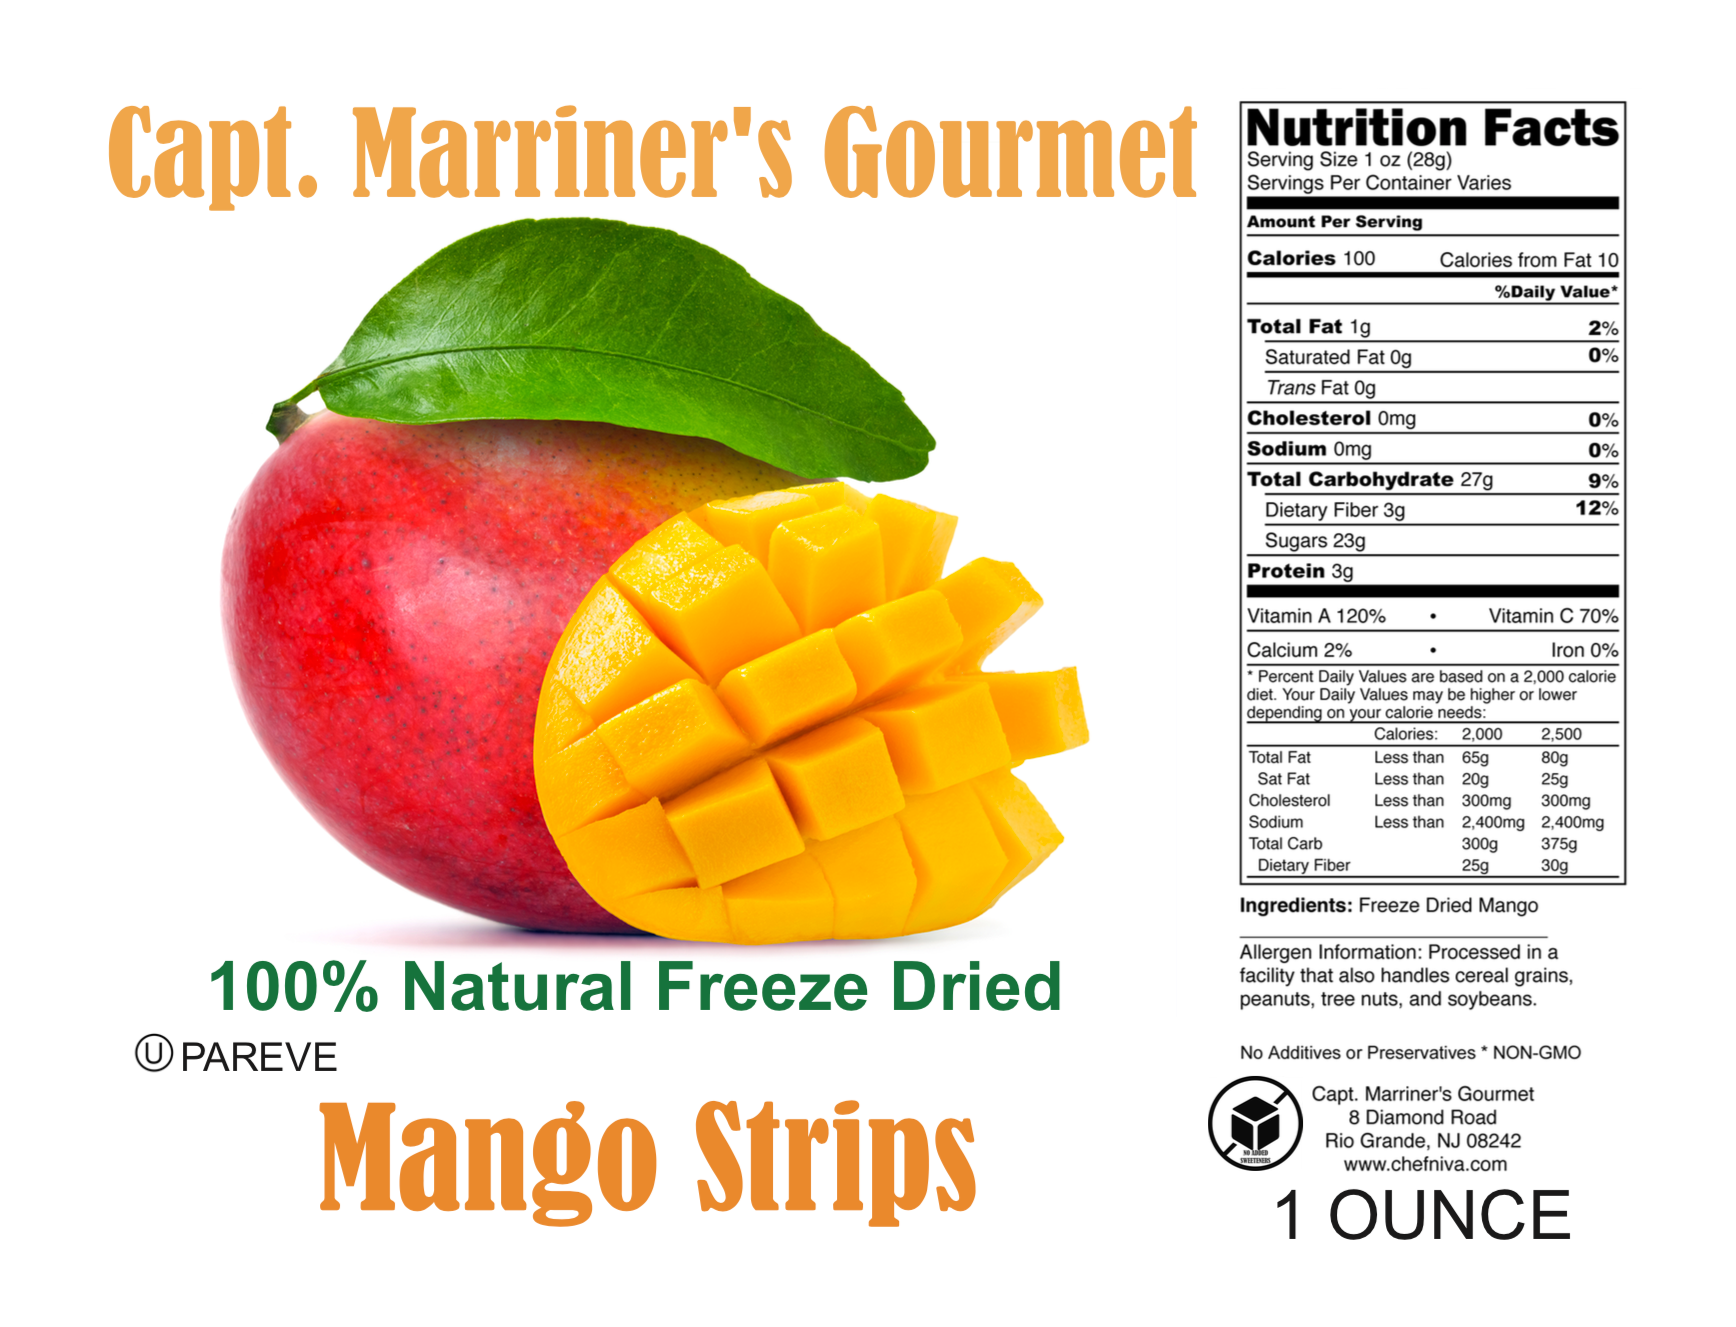 FREEZE DRIED MANGO STRIPS